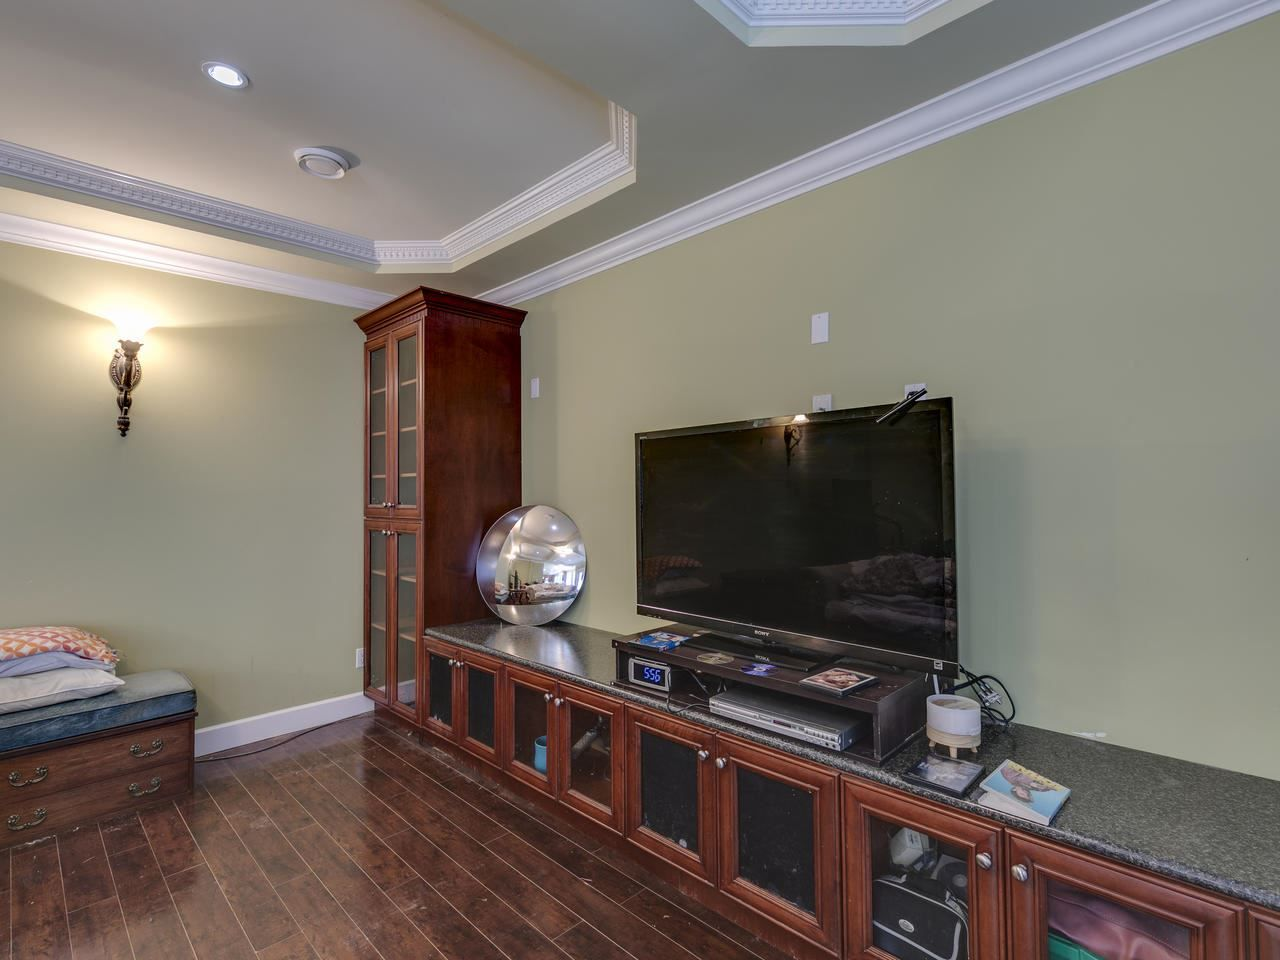 Photo 12: Photos: 7490 NO. 4 Road in Richmond: McLennan House for sale : MLS®# R2425068